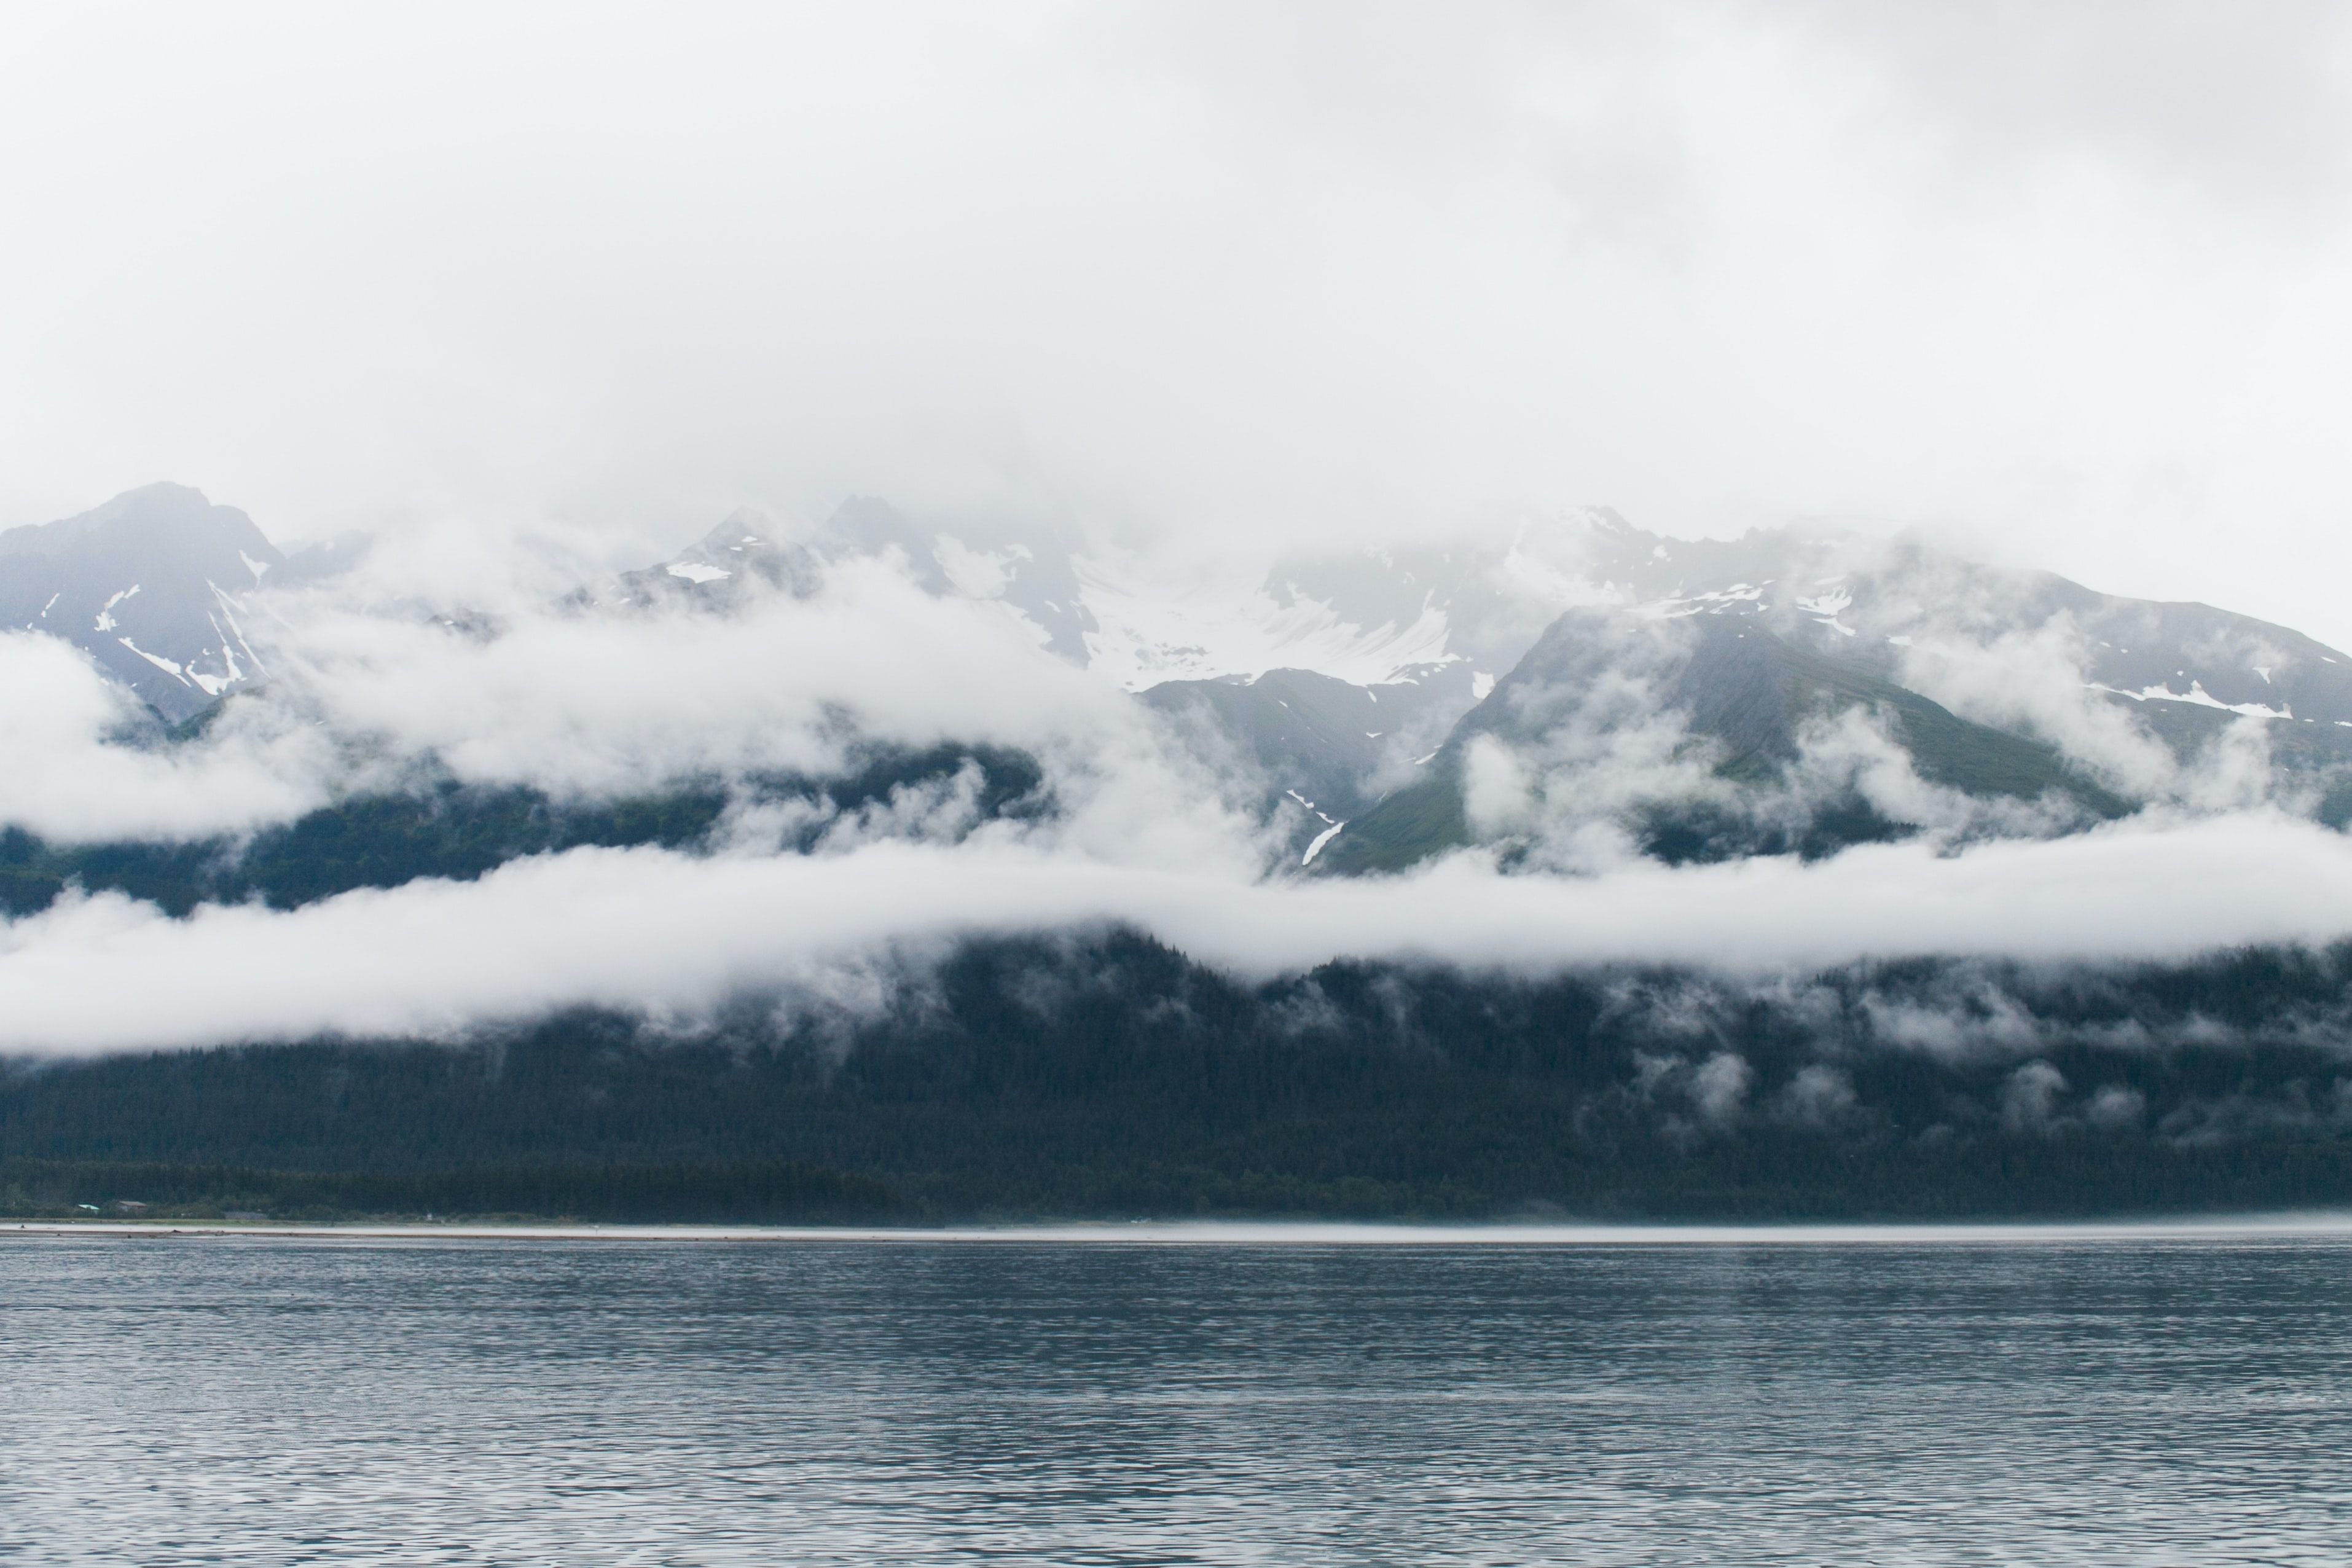 cloudy sky covered mountain taken at daytime